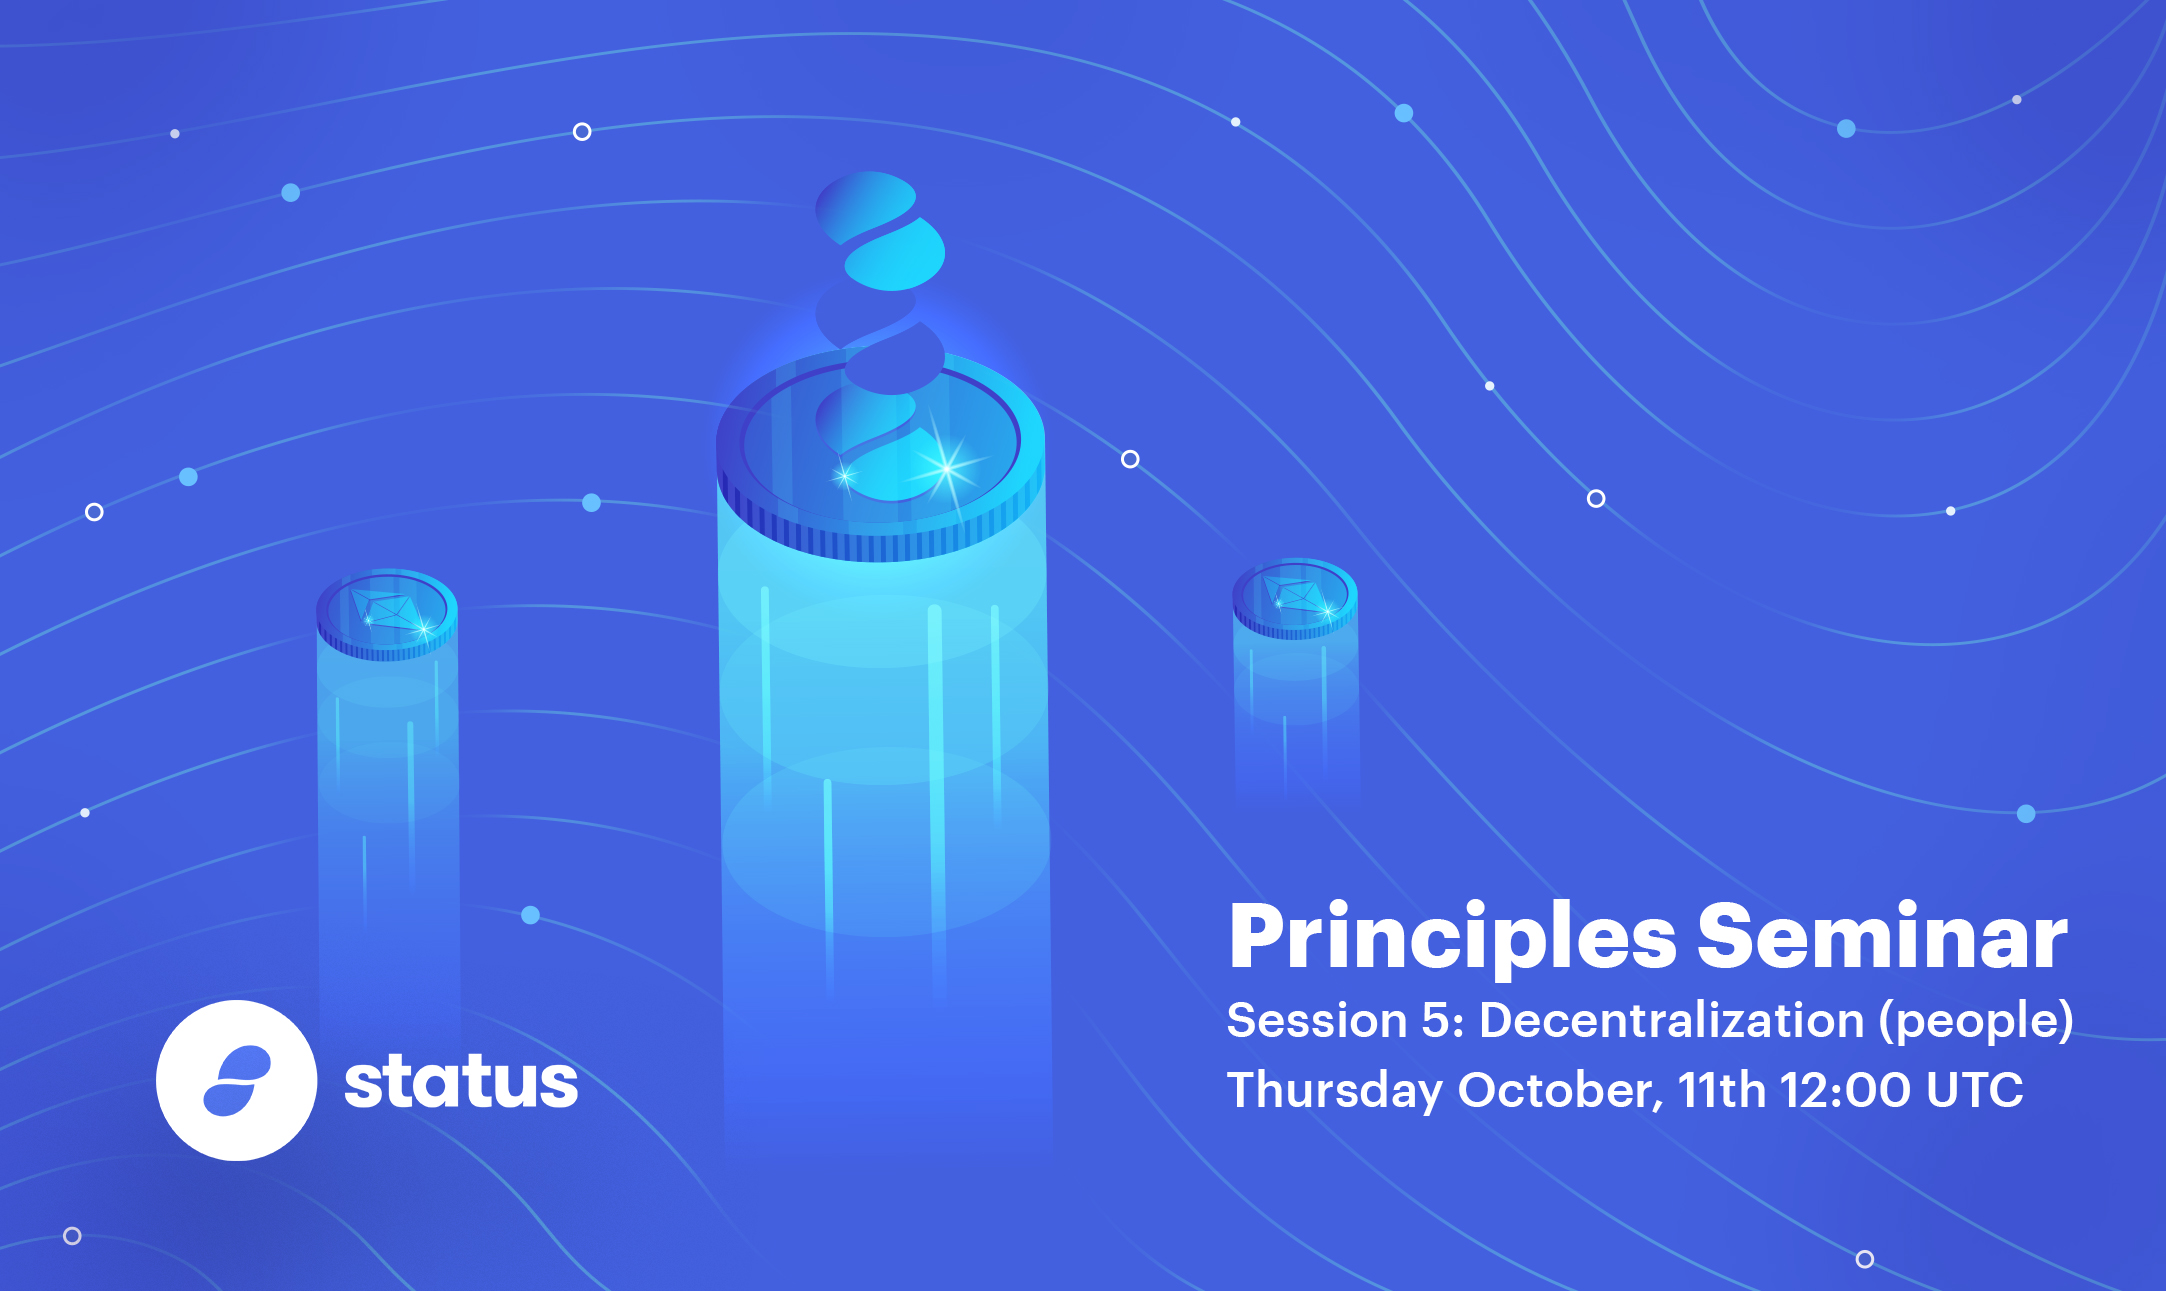 Principles Seminar - Session 5: Decentralization (people)